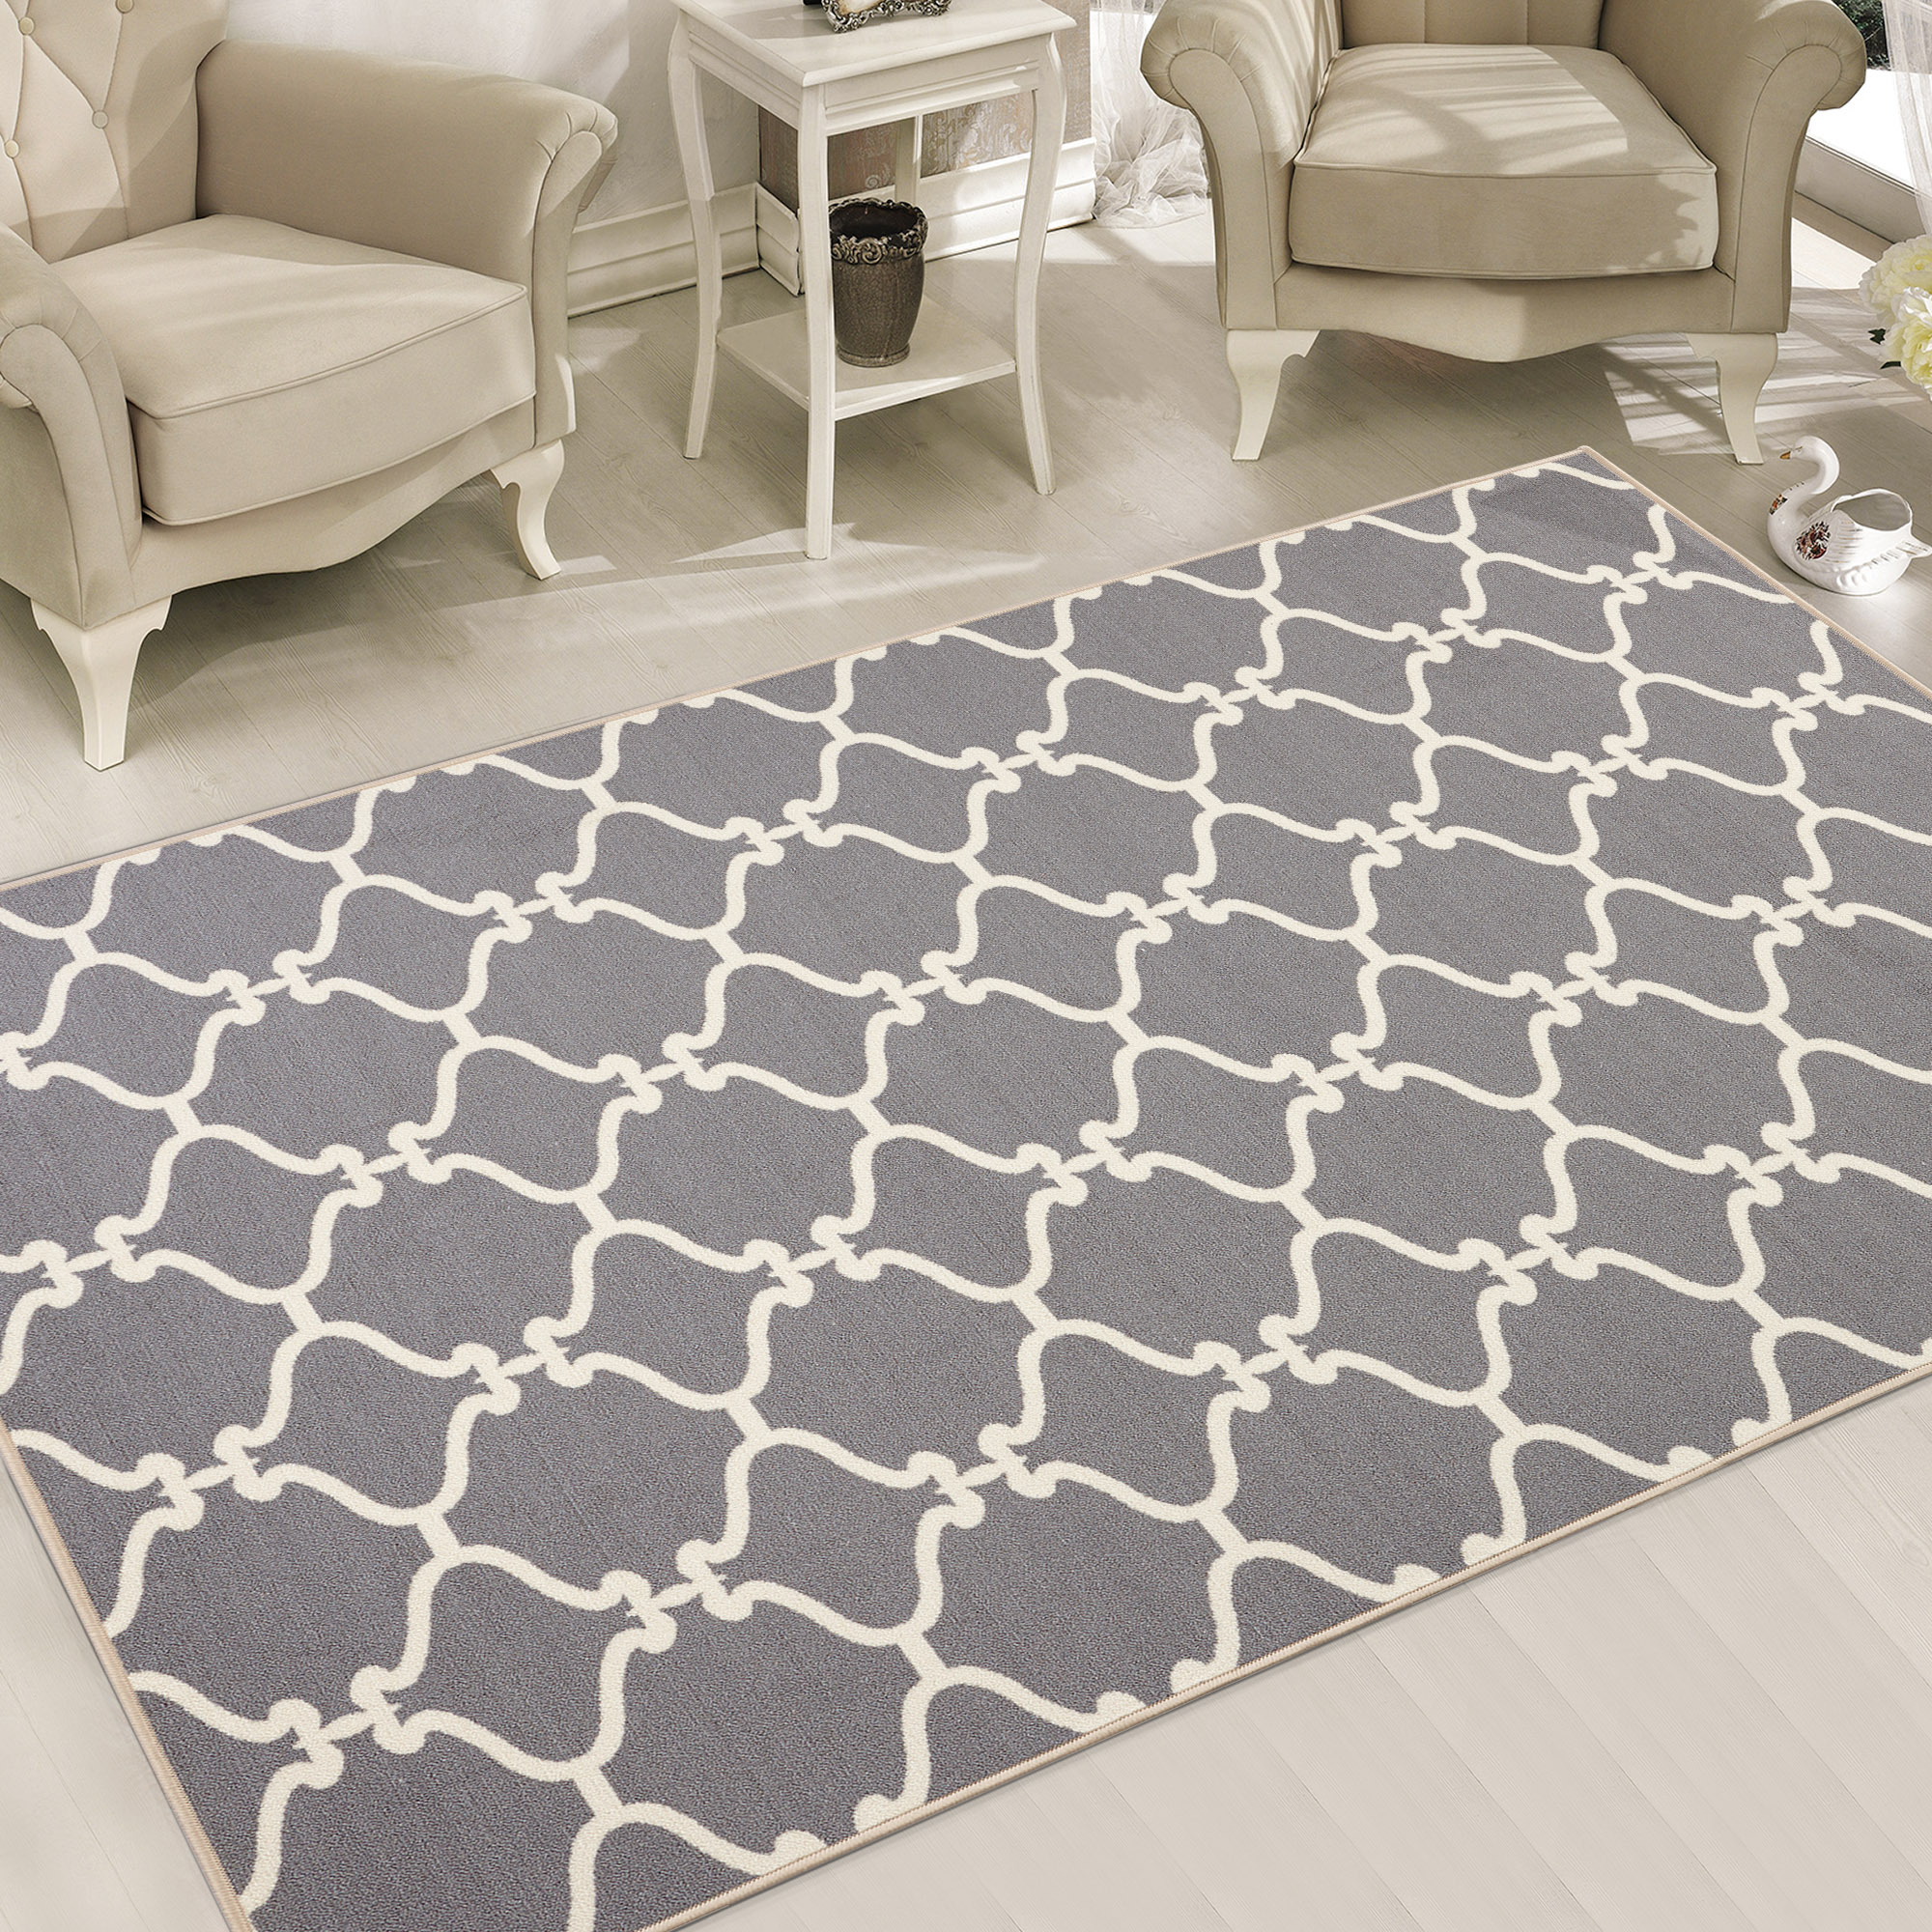 Sweet Home Stores Clifton Collection Moroccan Geometric Trellis Design Living and Bedroom Felt Back Area Rugs